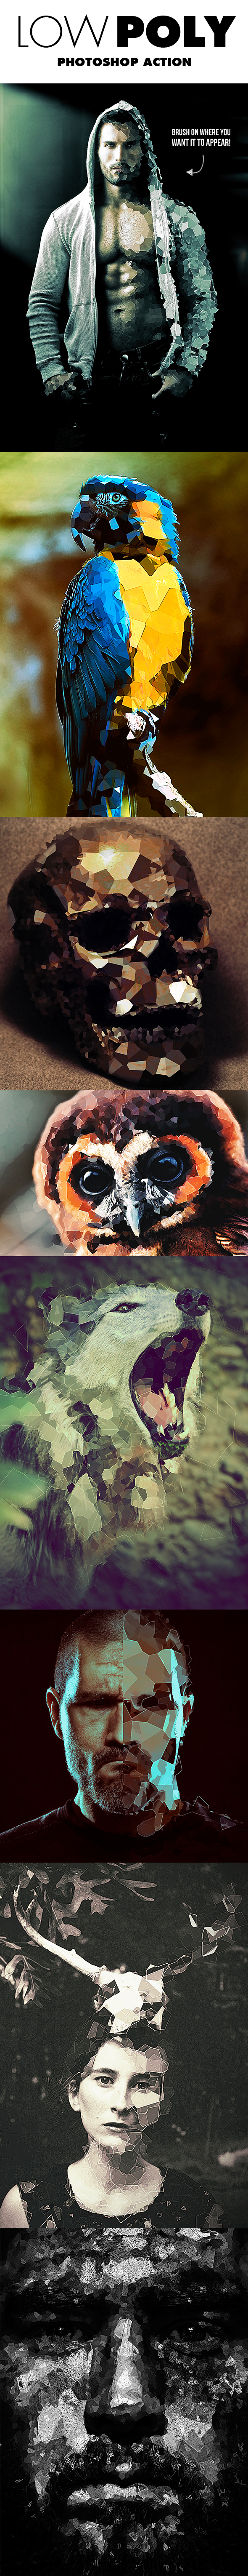 Graphicriver | Low Poly Photoshop Action Free Download #1 free download Graphicriver | Low Poly Photoshop Action Free Download #1 nulled Graphicriver | Low Poly Photoshop Action Free Download #1